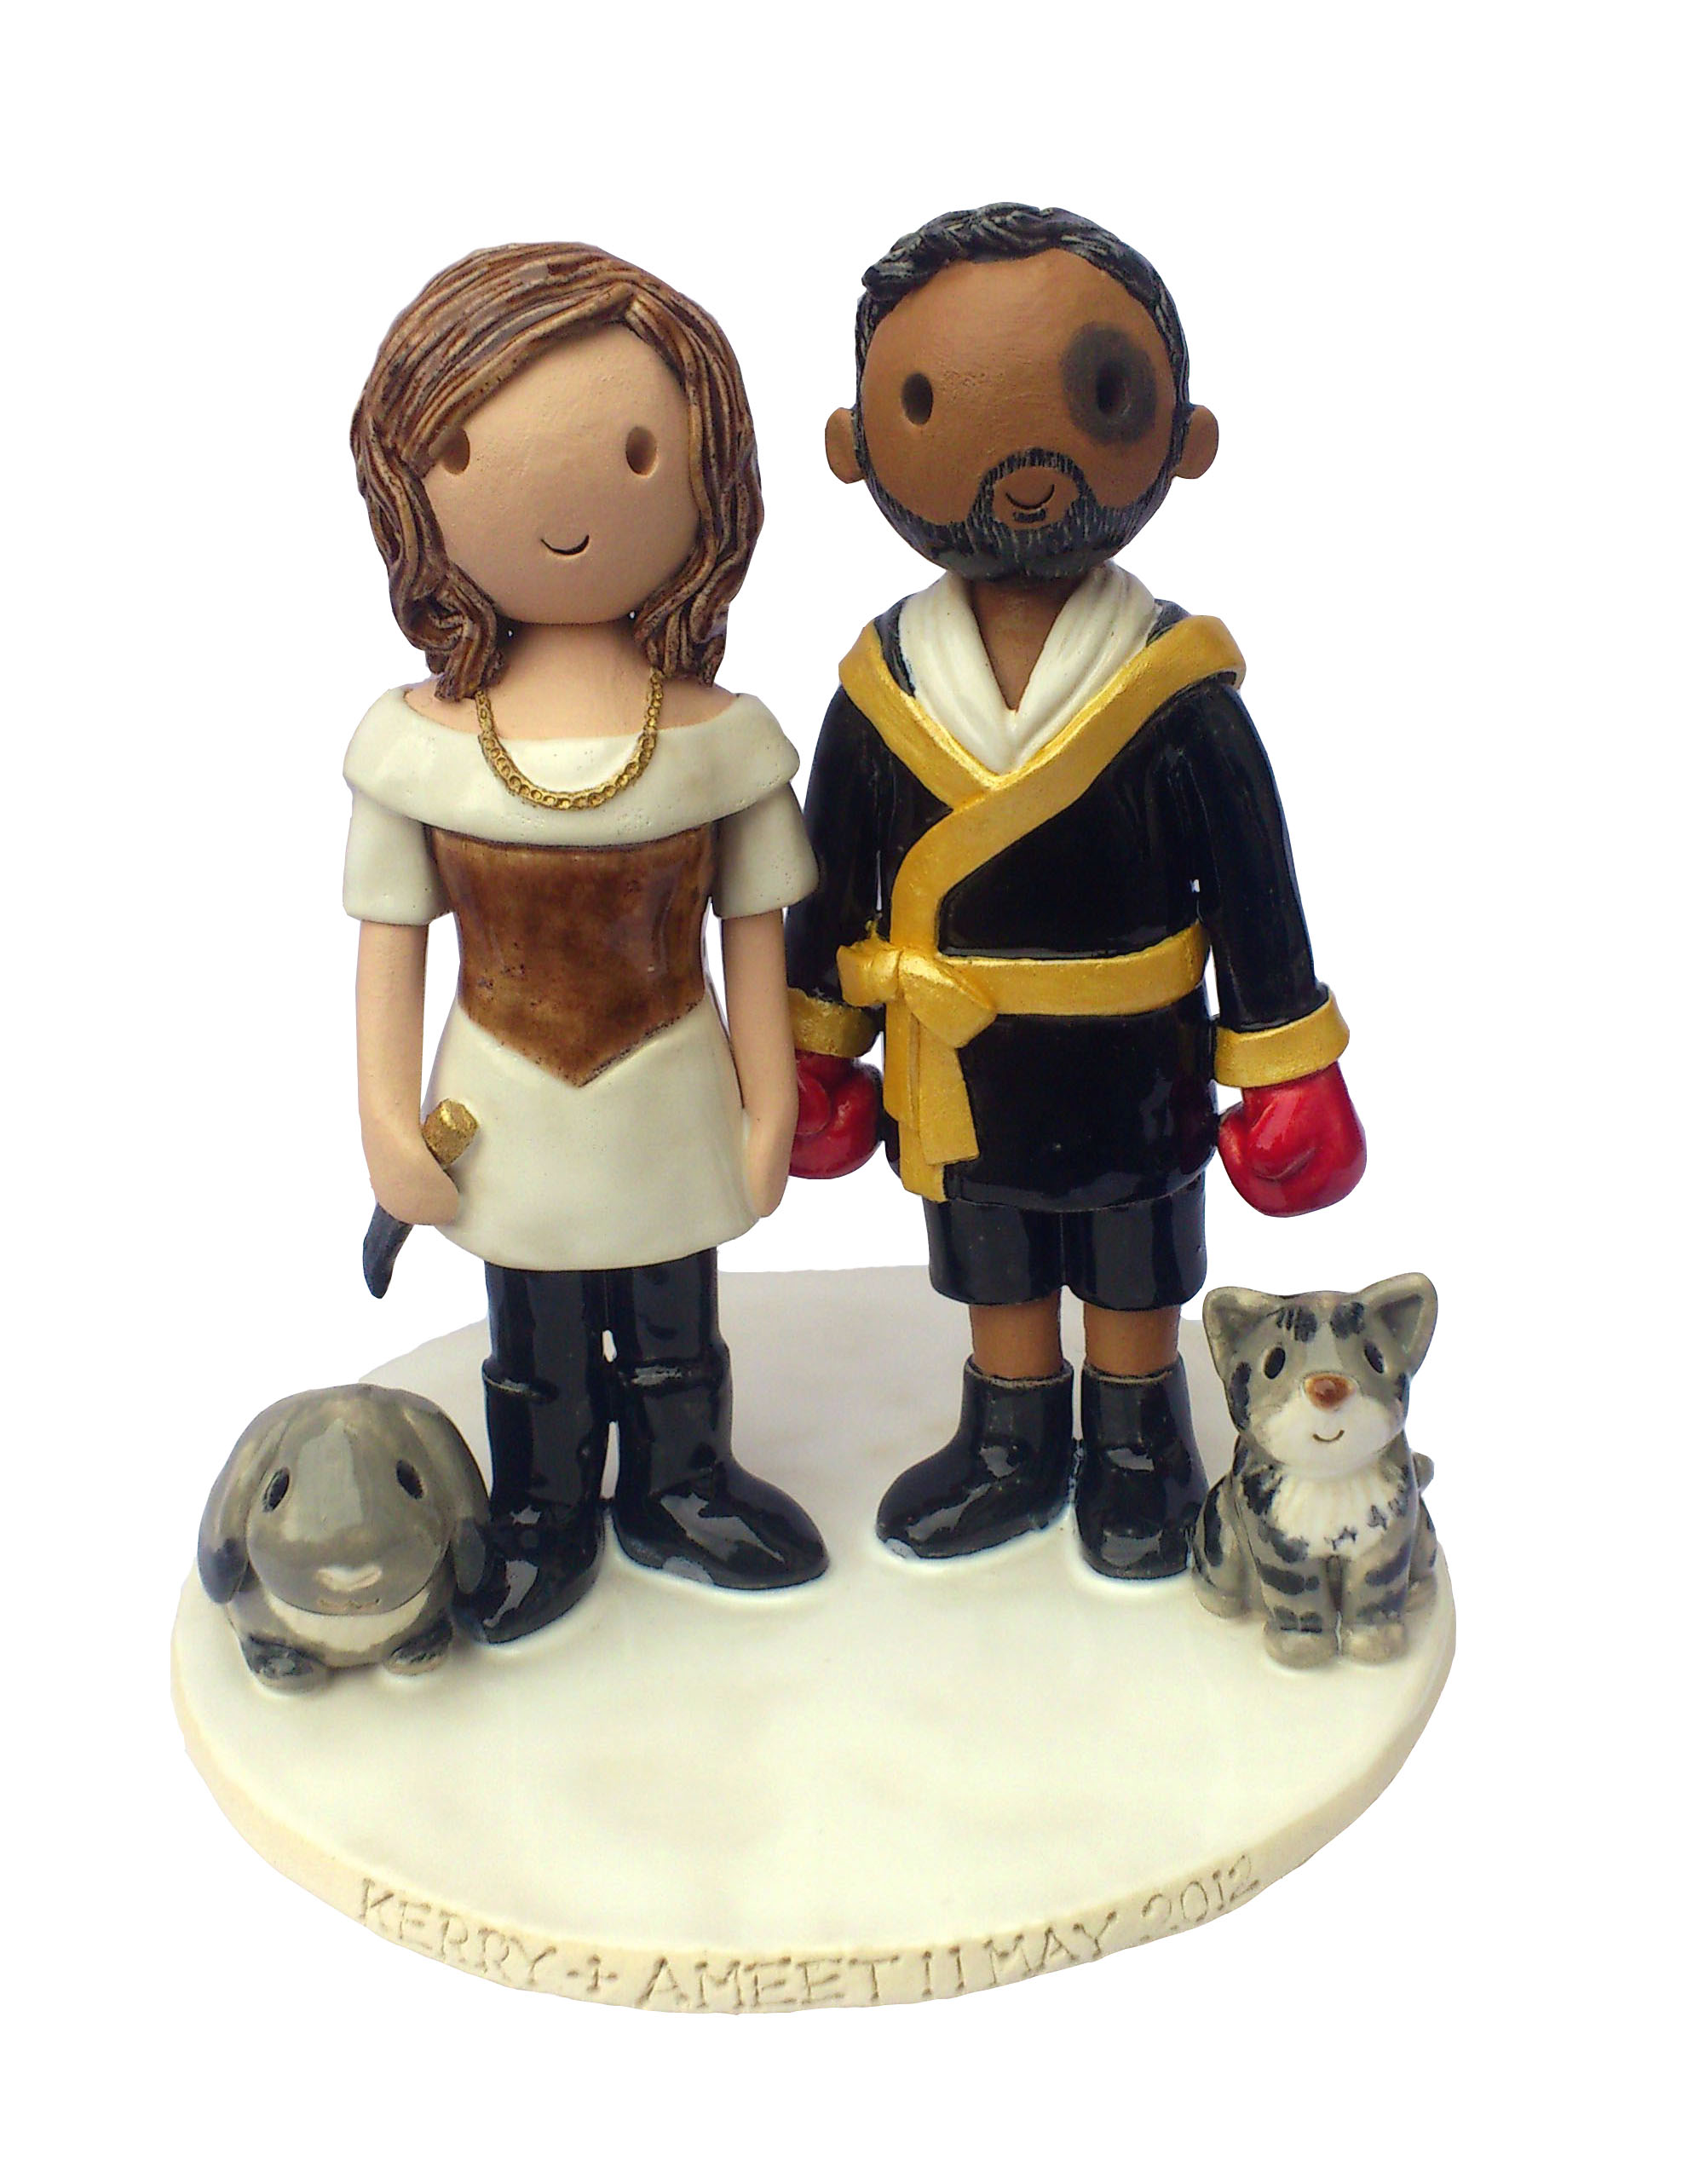 Cheap Bobblehead Cake Topper